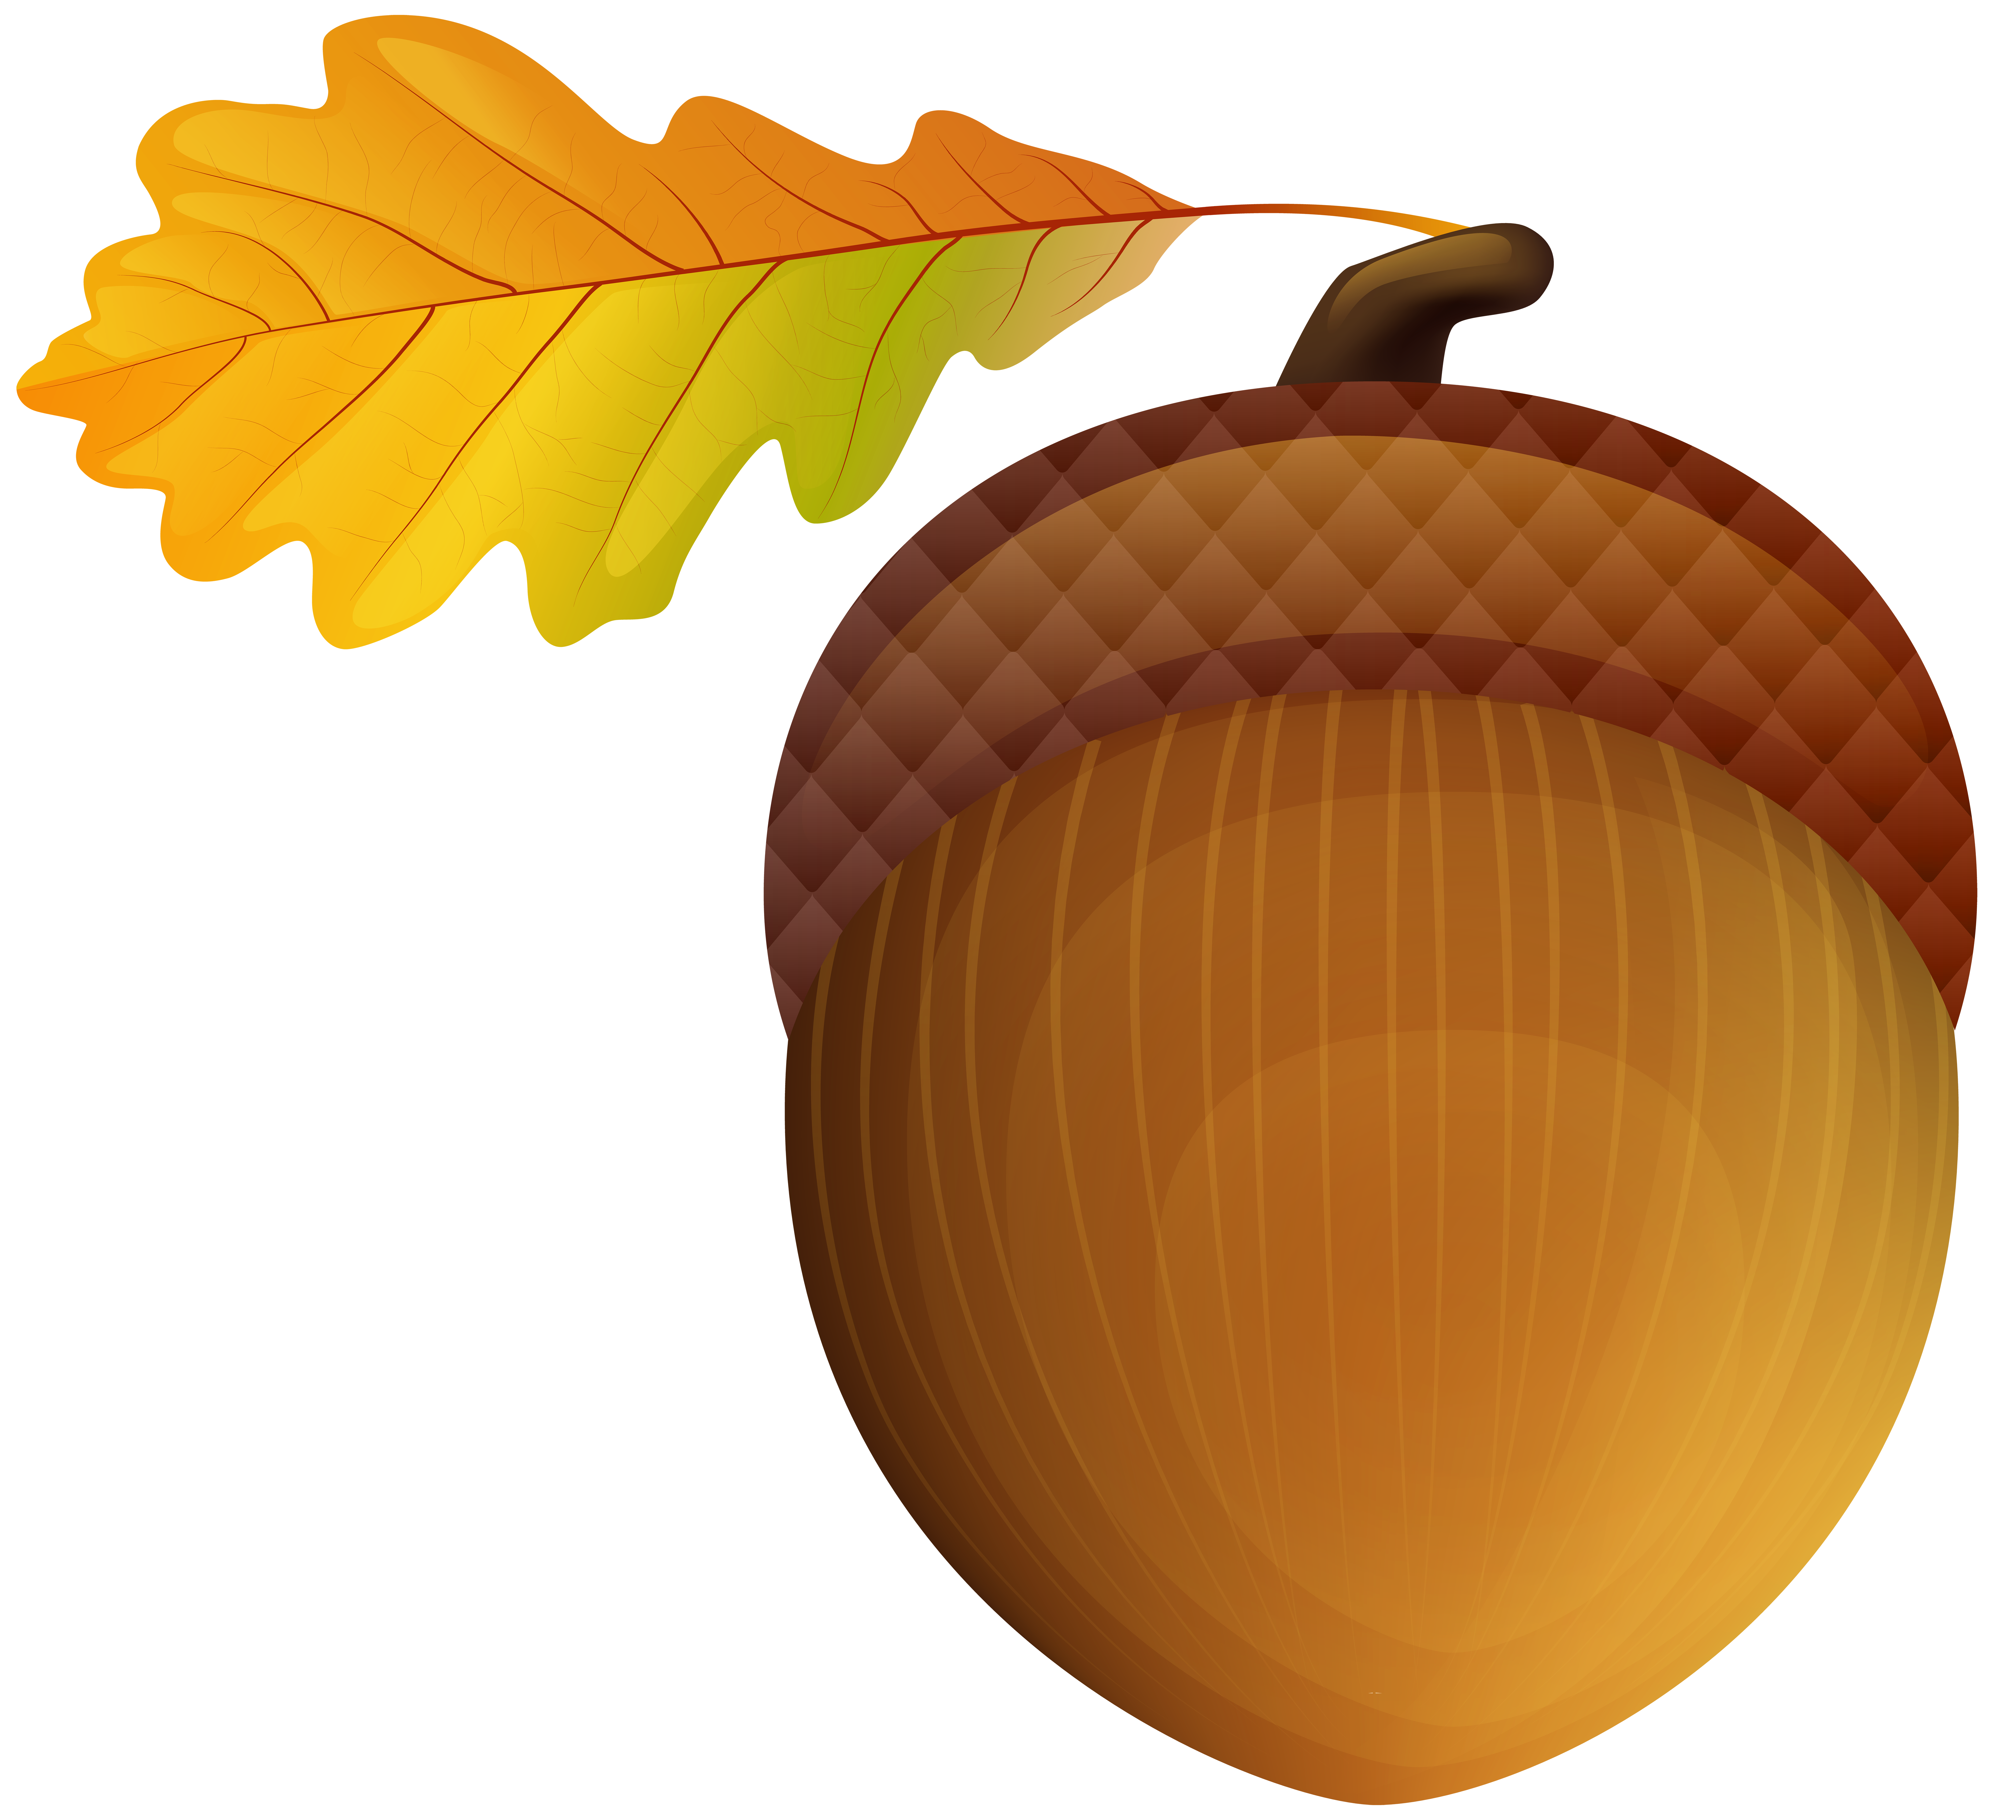 Acran clipart clip freeuse library Acorn PNG Clip Art Image | Gallery Yopriceville - High-Quality ... clip freeuse library